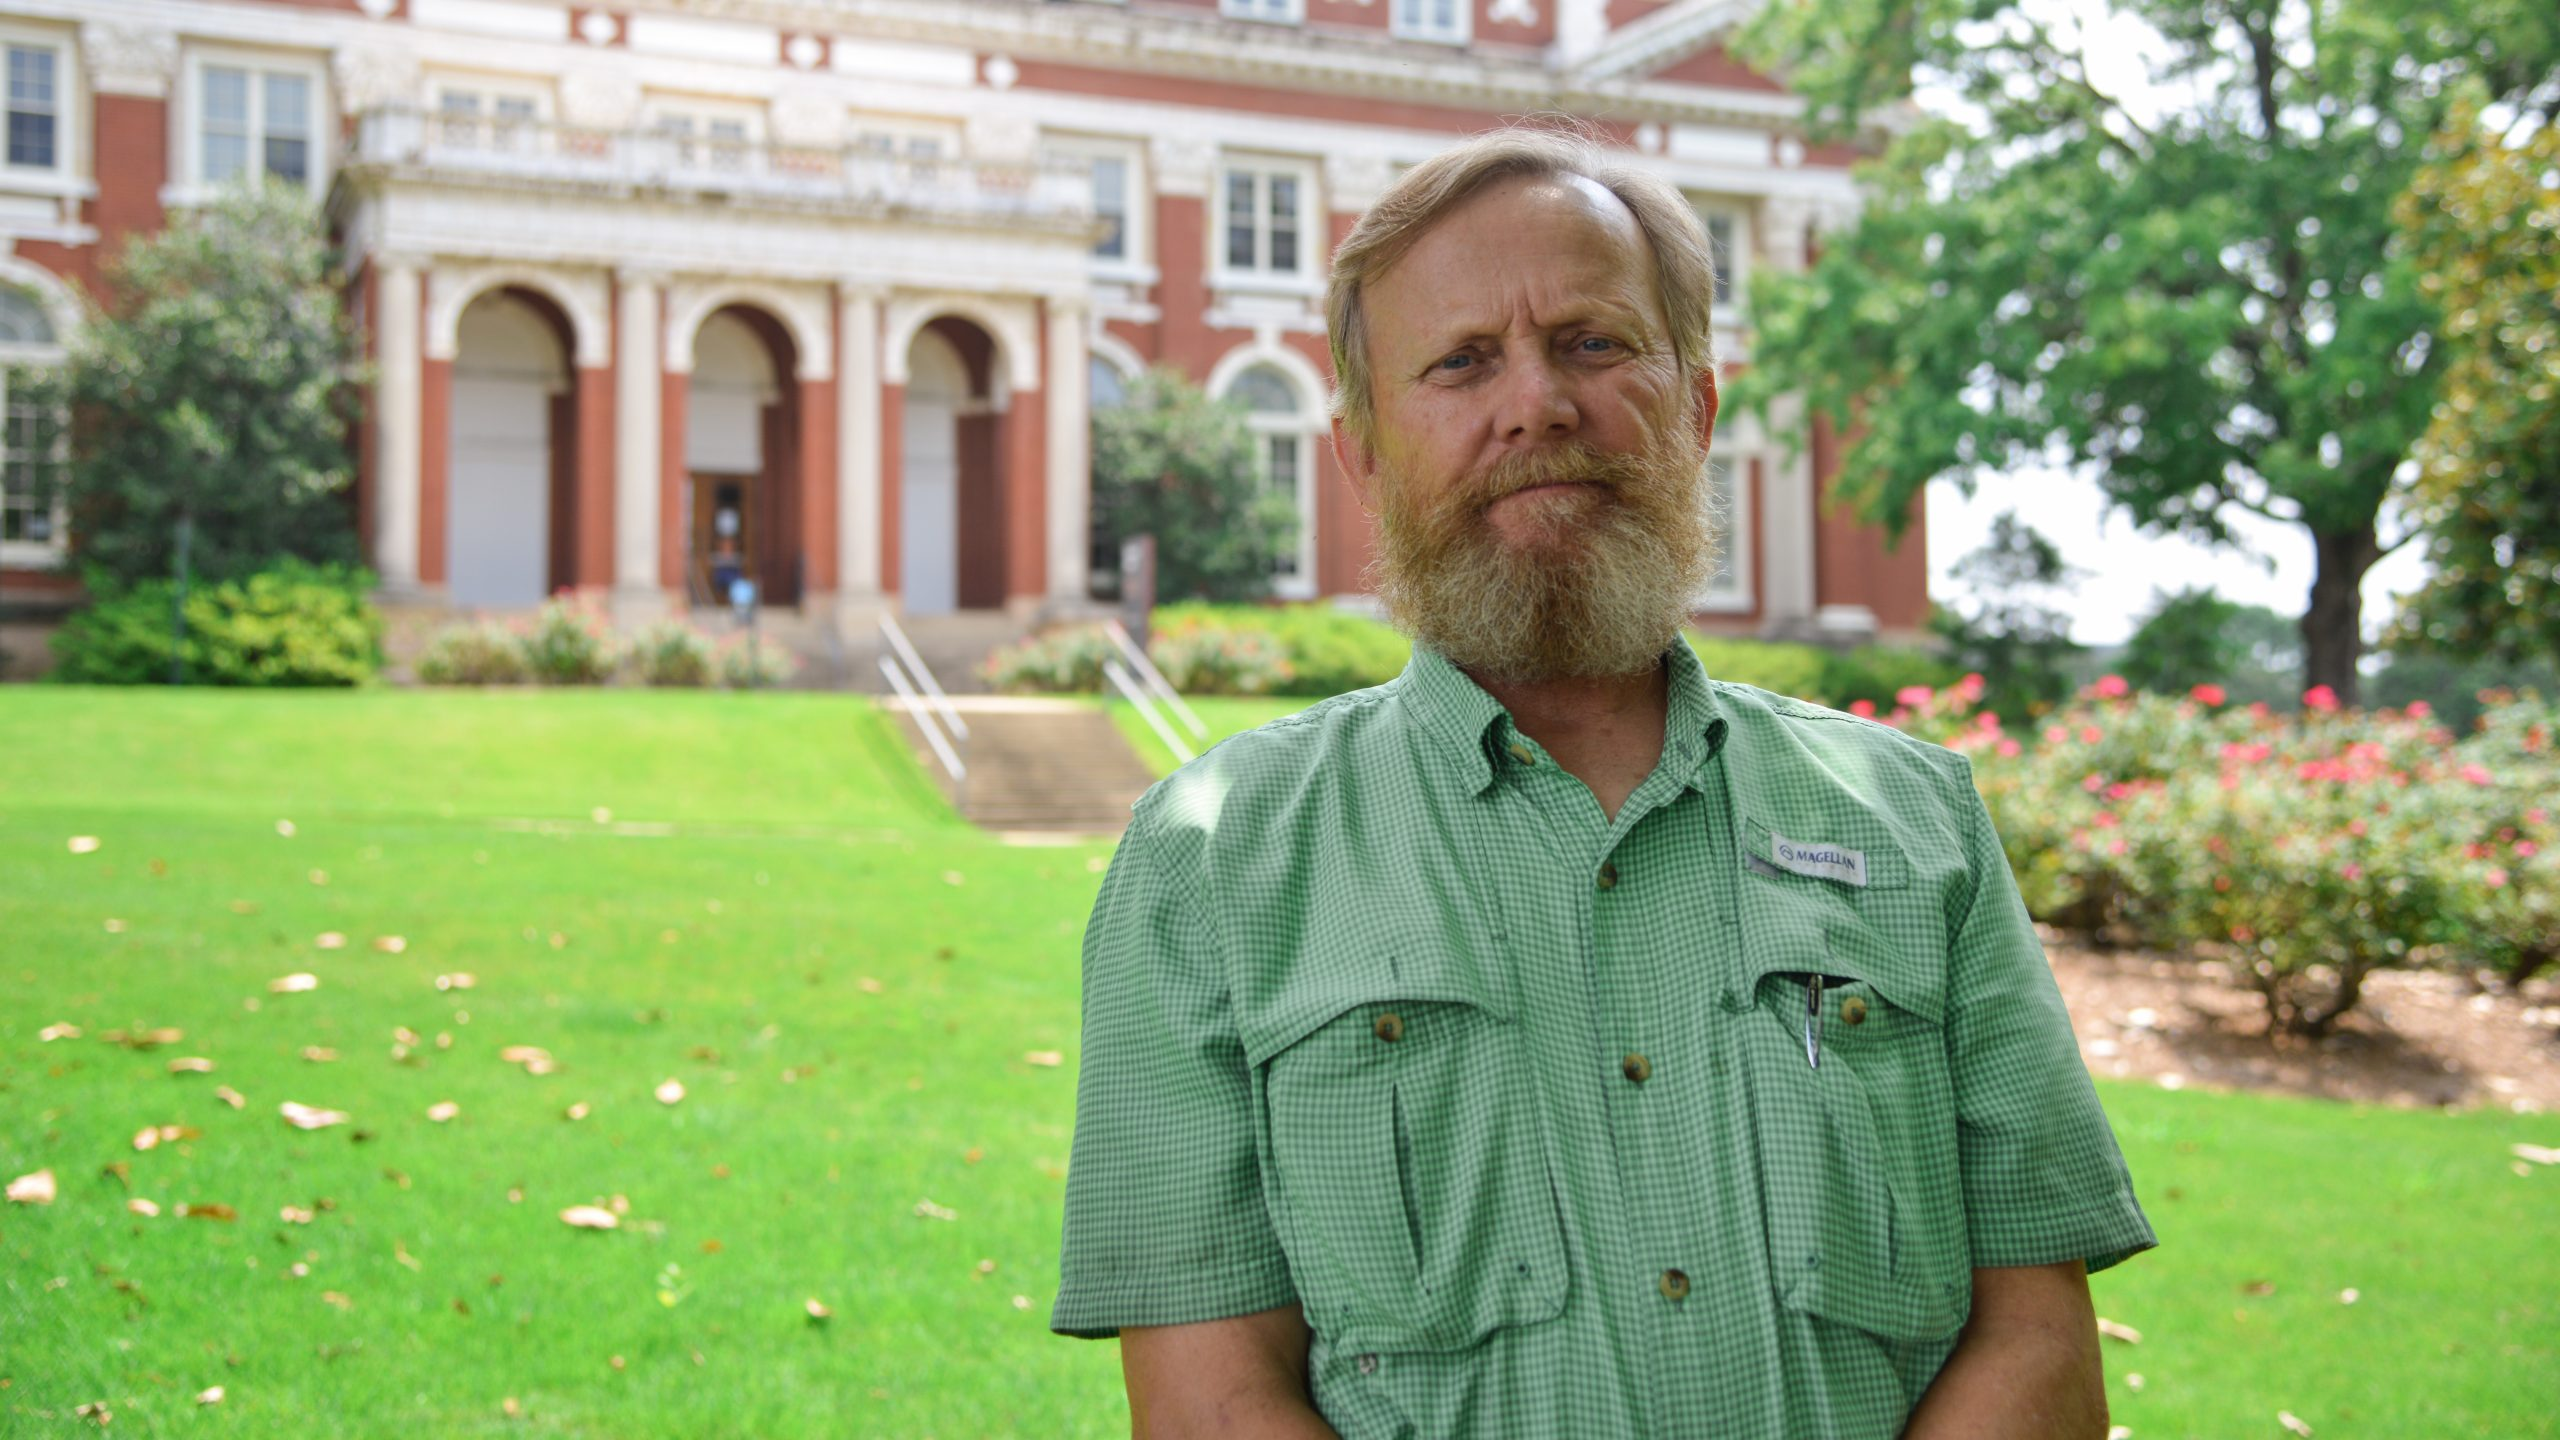 Wheeler Foshee smiles for the camera in front of Comer Hall